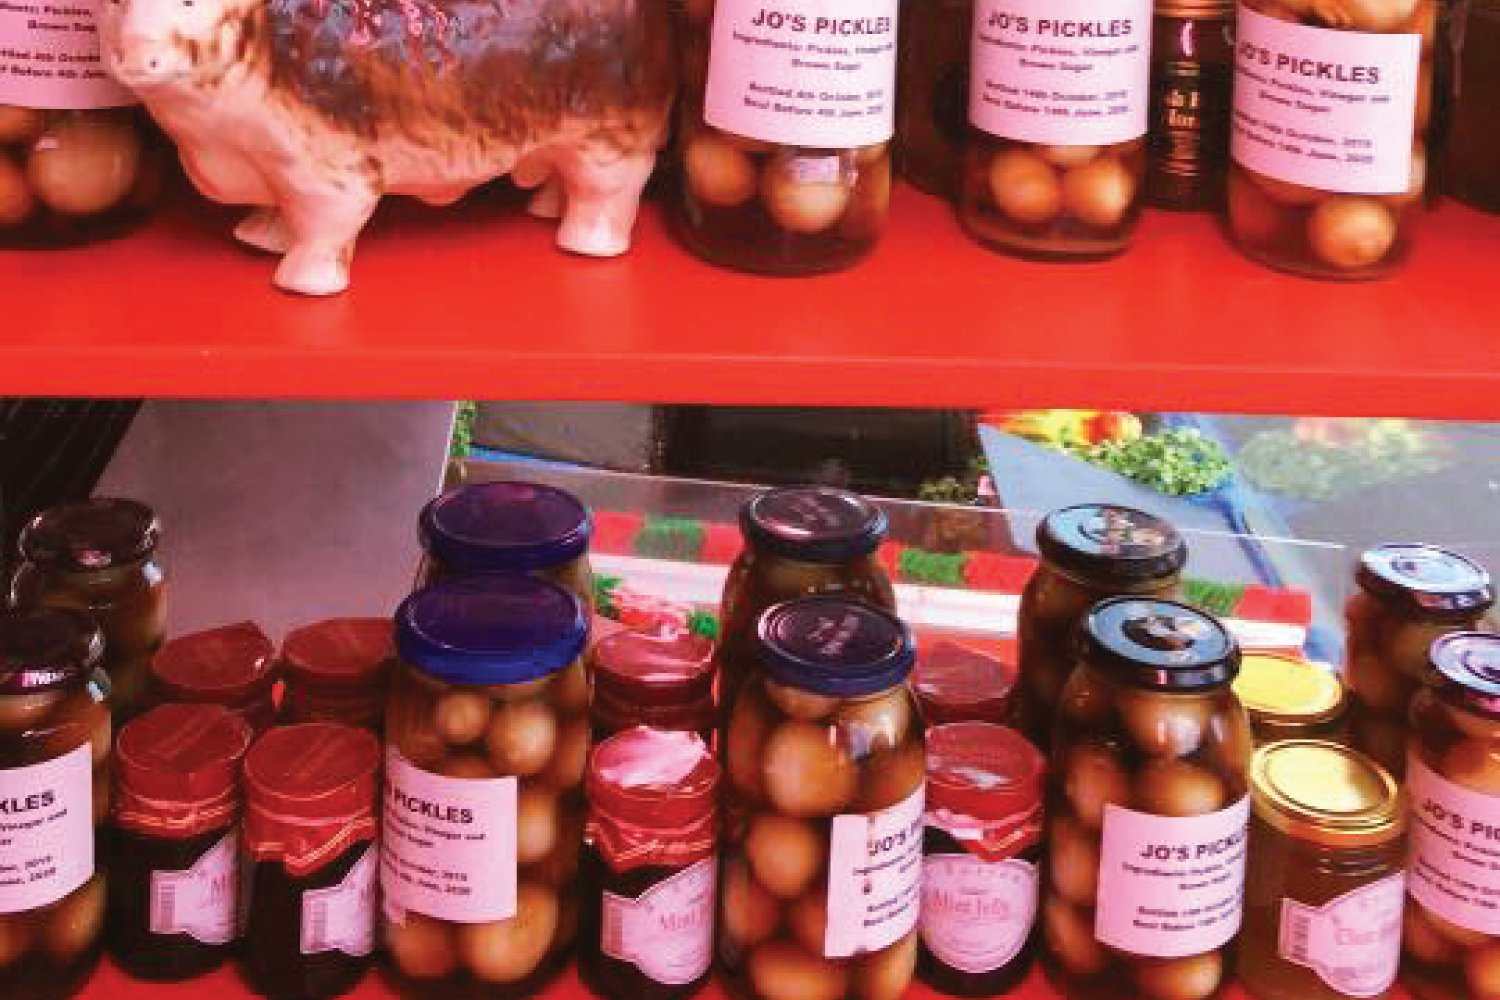 Pickled Onions Oswestry M Battams Butchers Shropshire